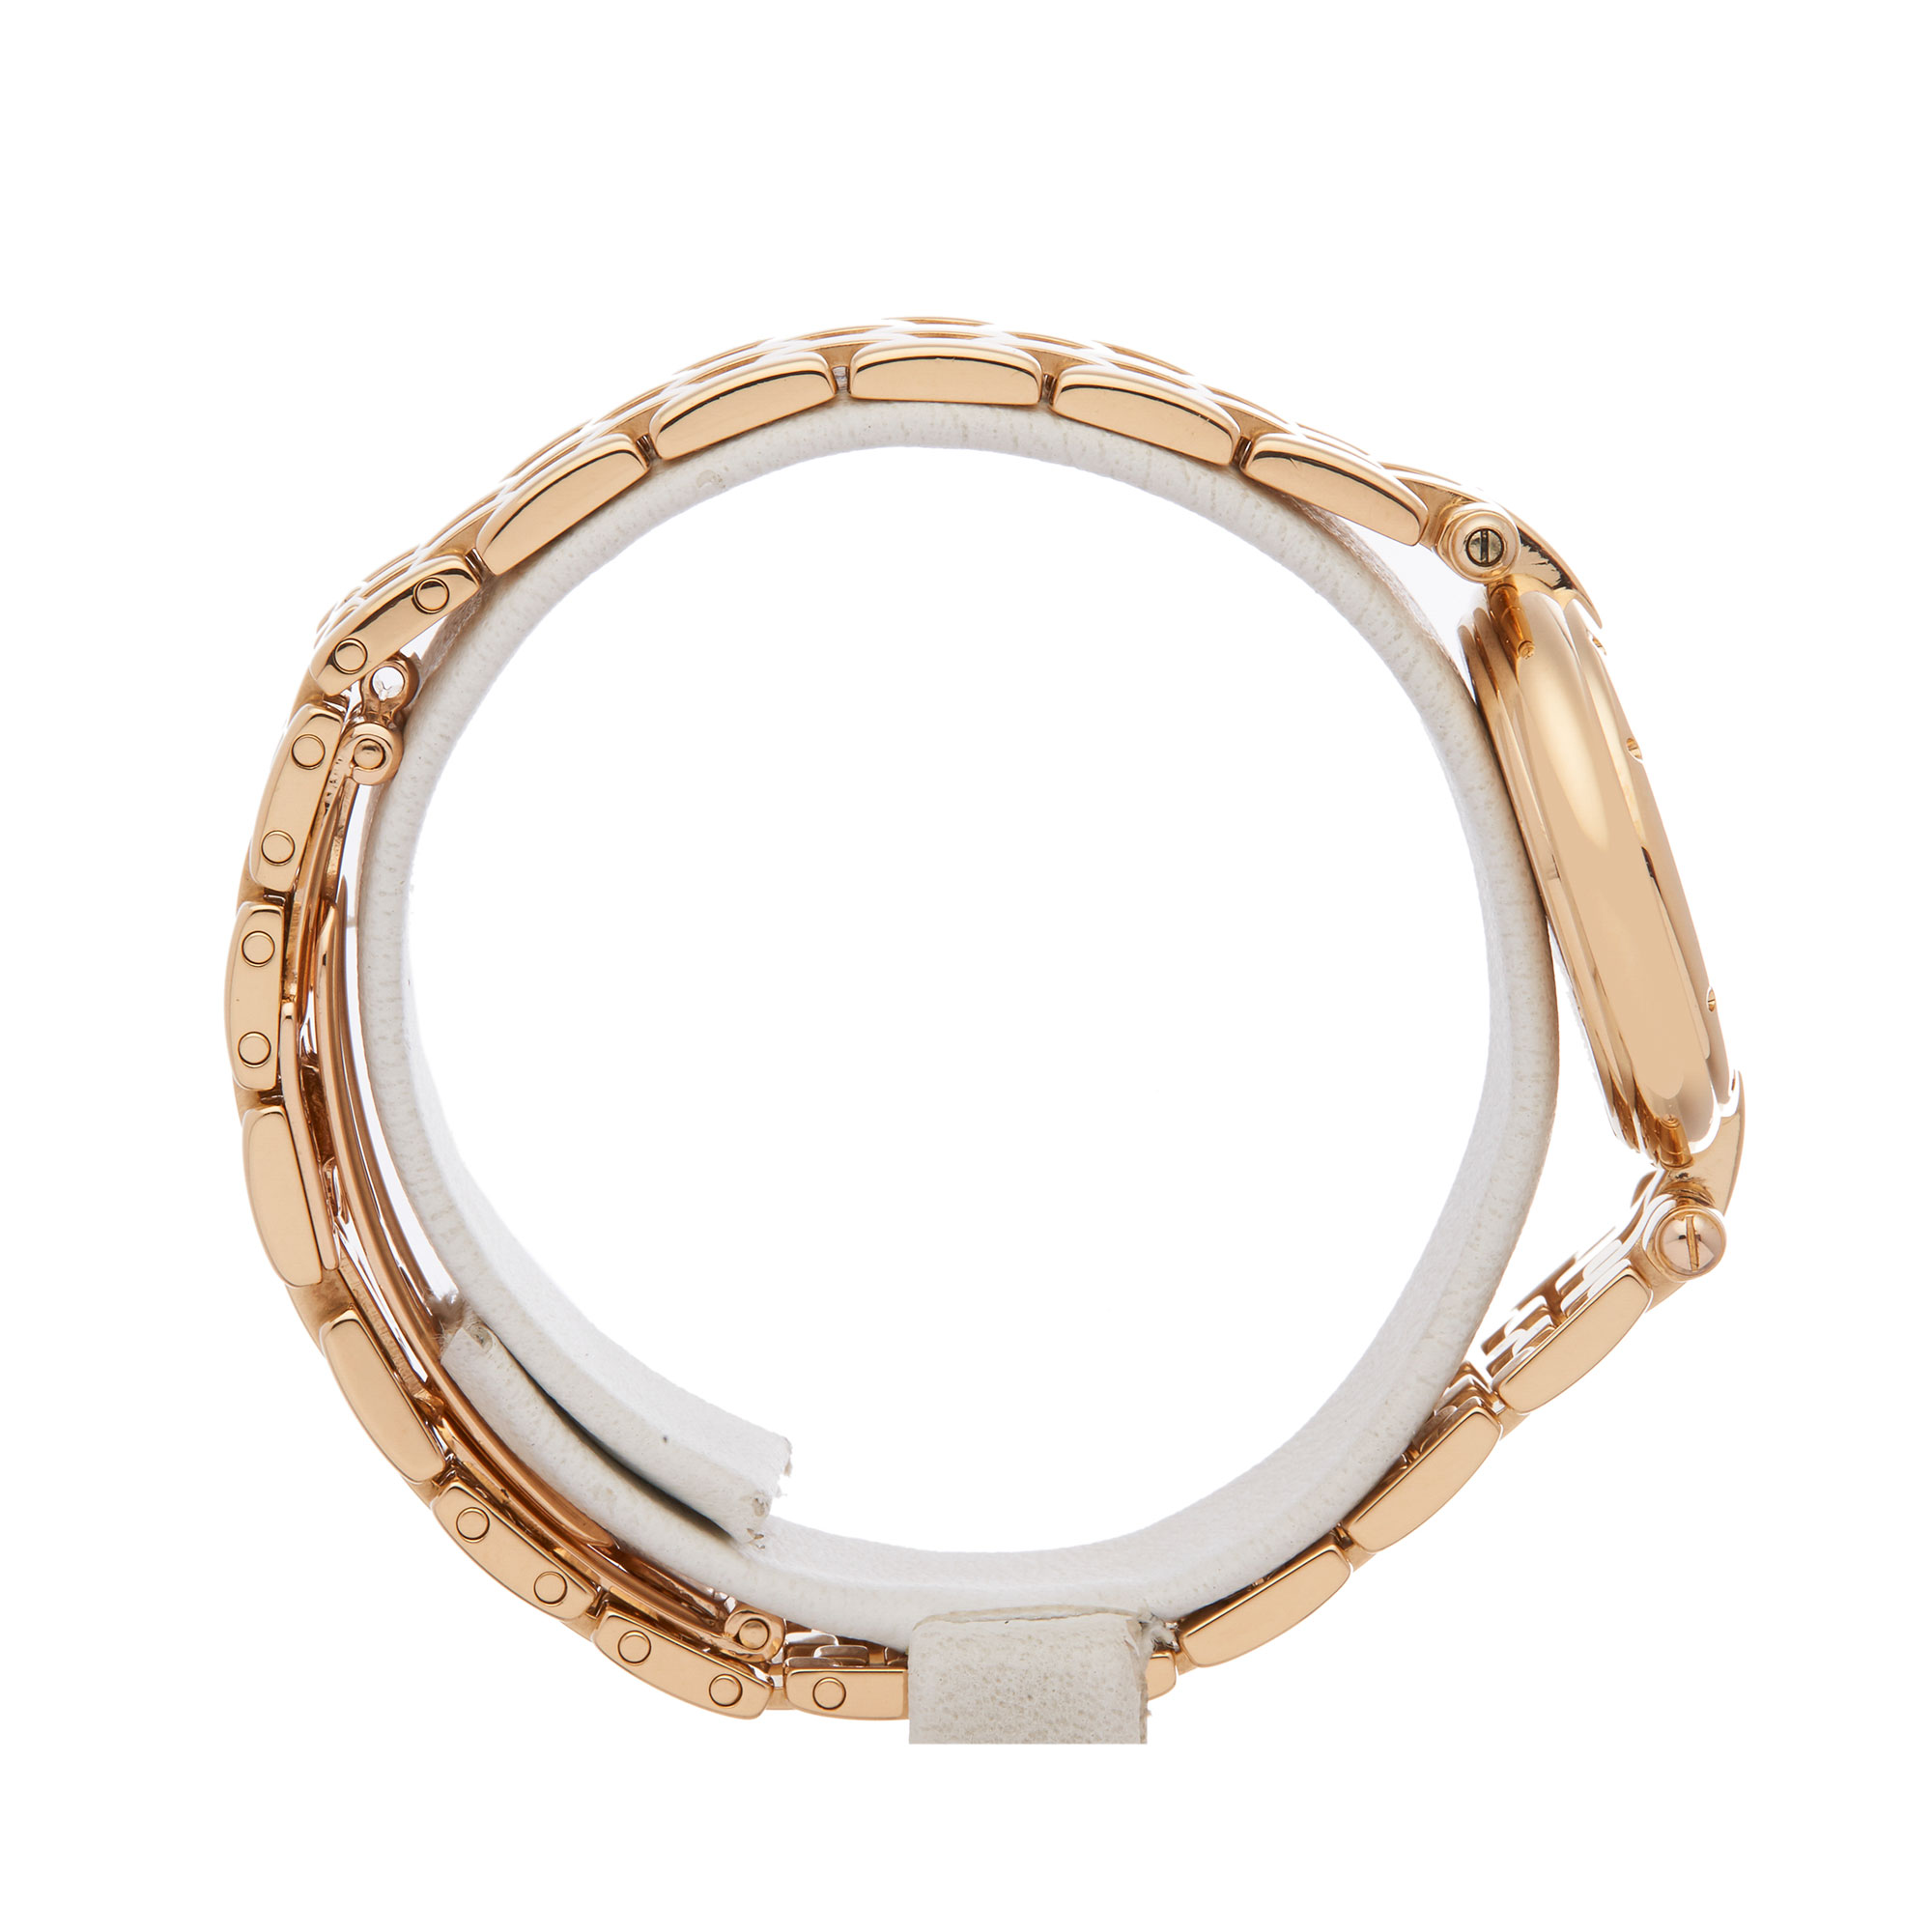 Cartier Panthère Vendome Ladies Yellow Gold Watch - Image 6 of 9